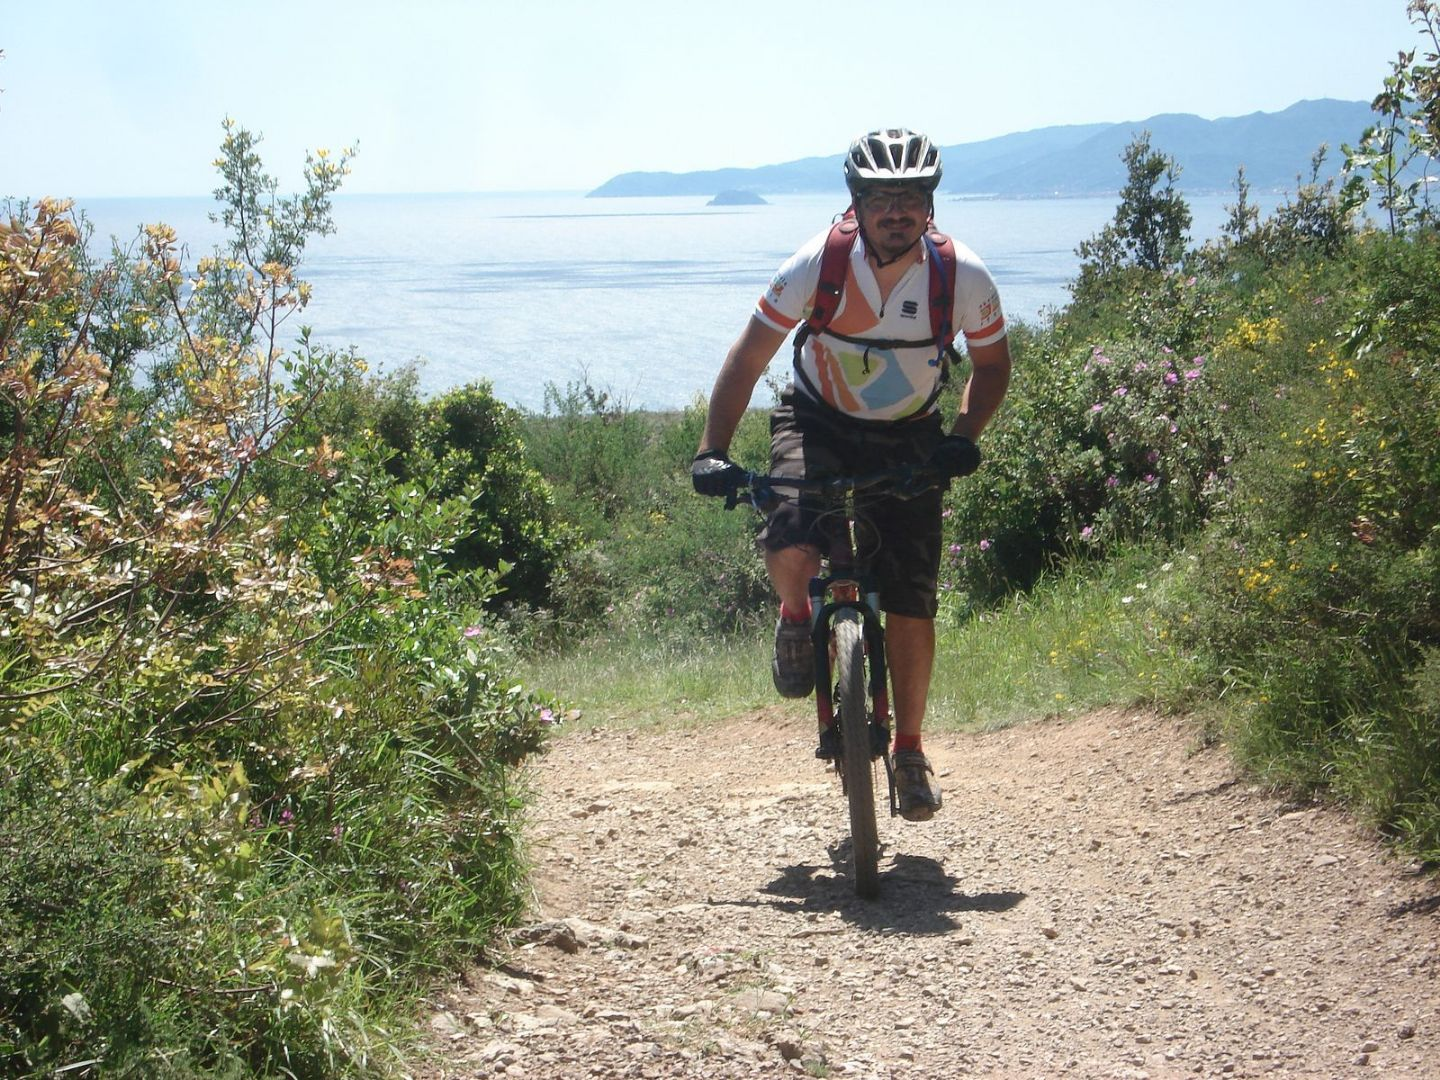 8889228674_95d5b79813_h.jpg - Italy - Liguria - Riding the Riviera - Guided Mountain Bike Holiday - Italia Mountain Biking